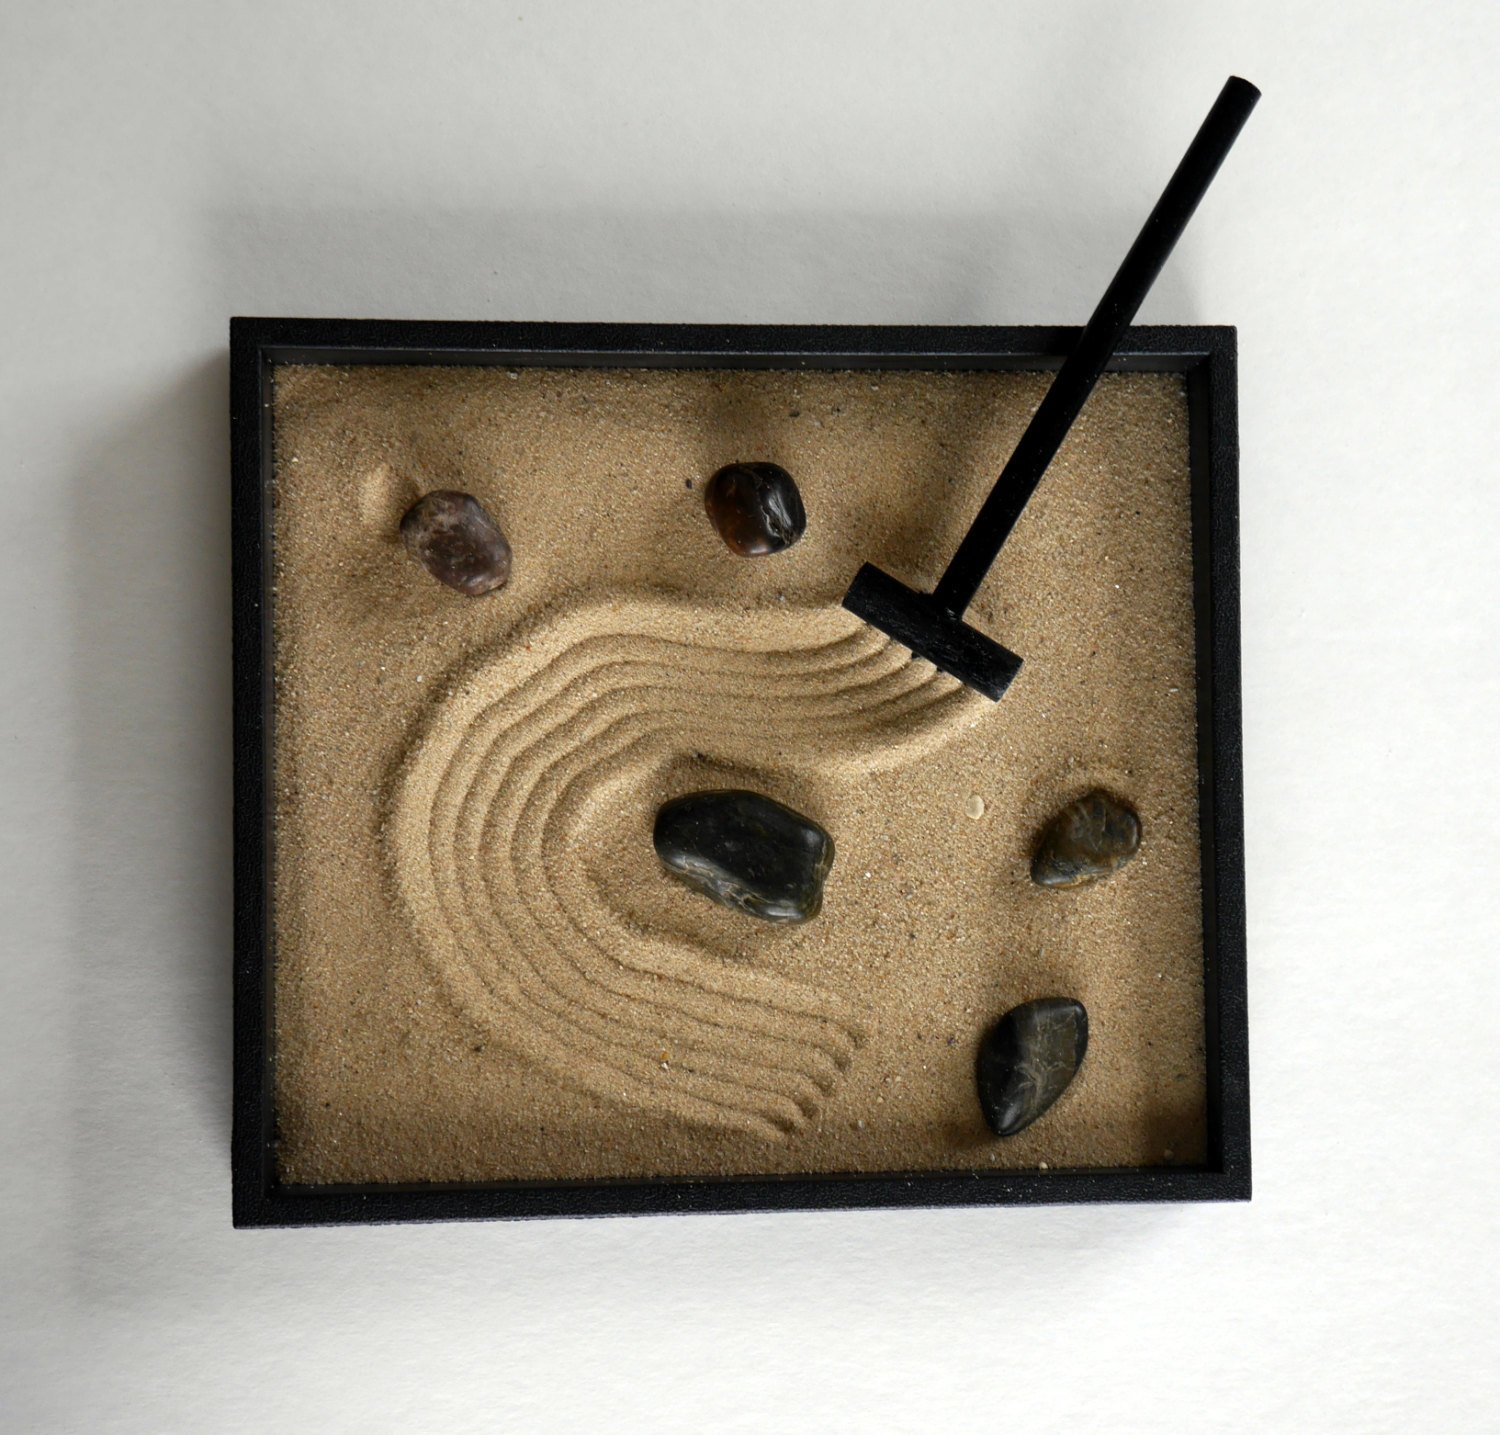 Amazon.com: Zen Garden Handmade Kit Black Indoor Zen Garden ...